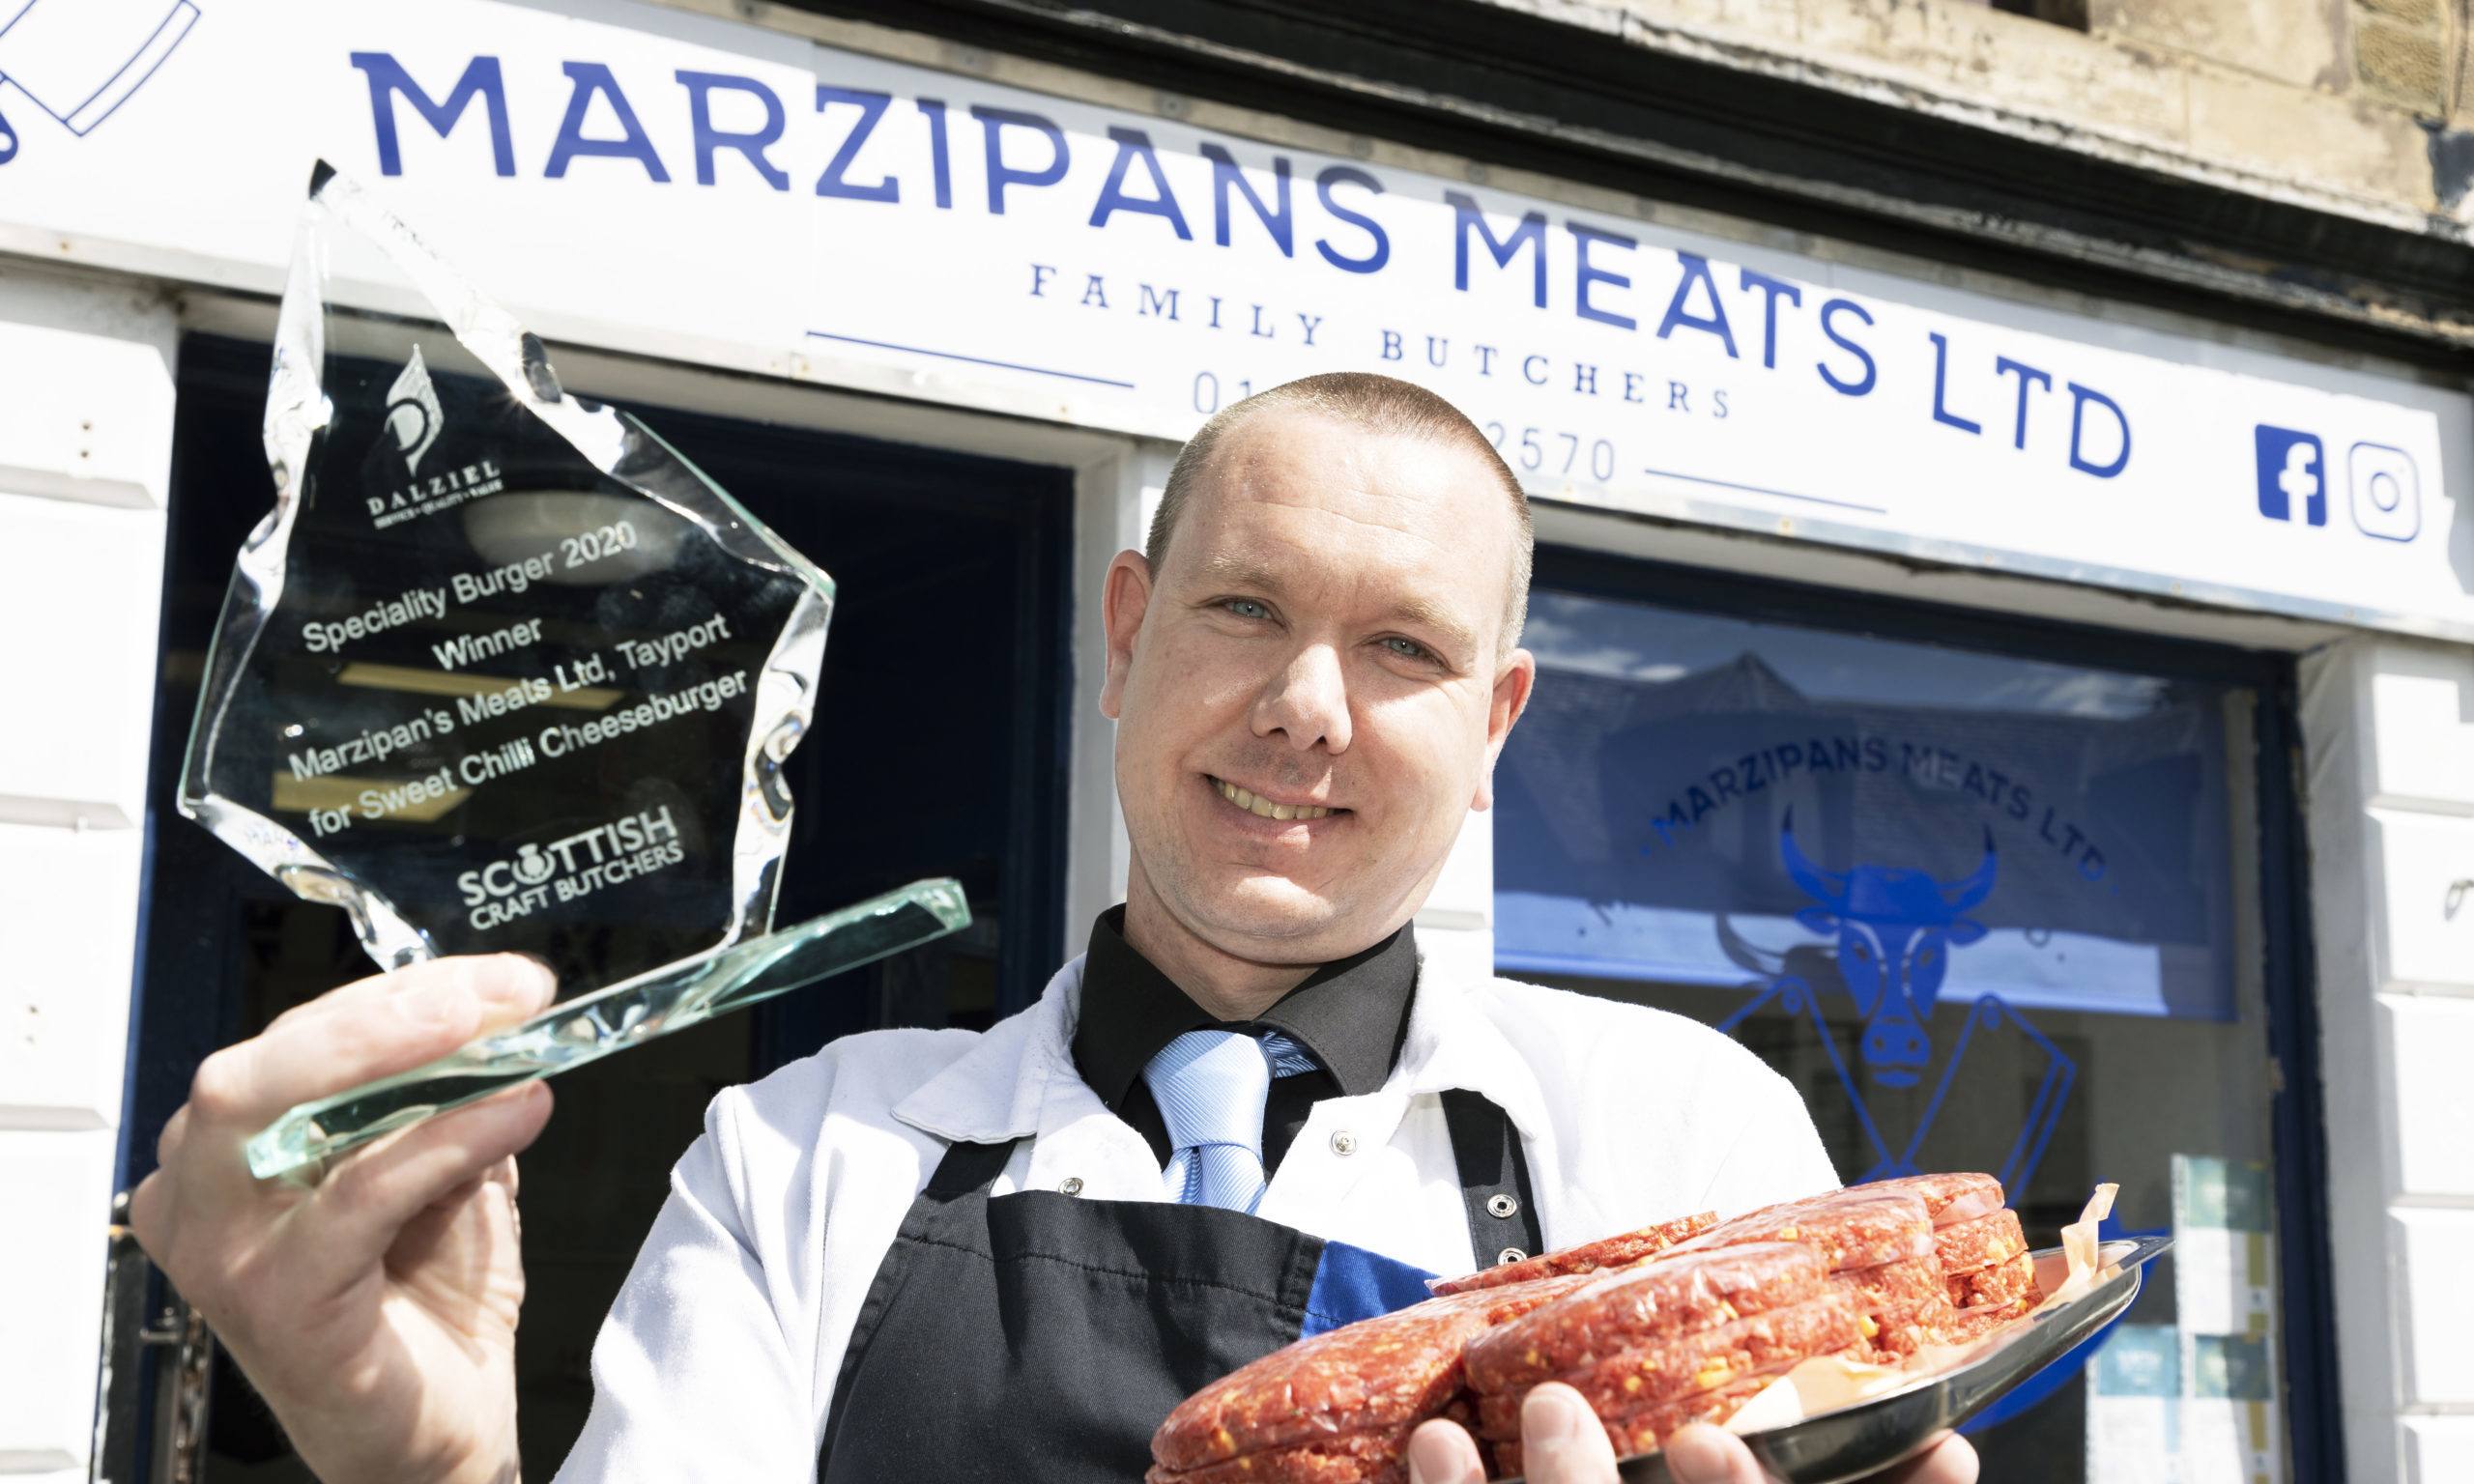 Paul Marzinik of Marzipans Meats in Tayport.